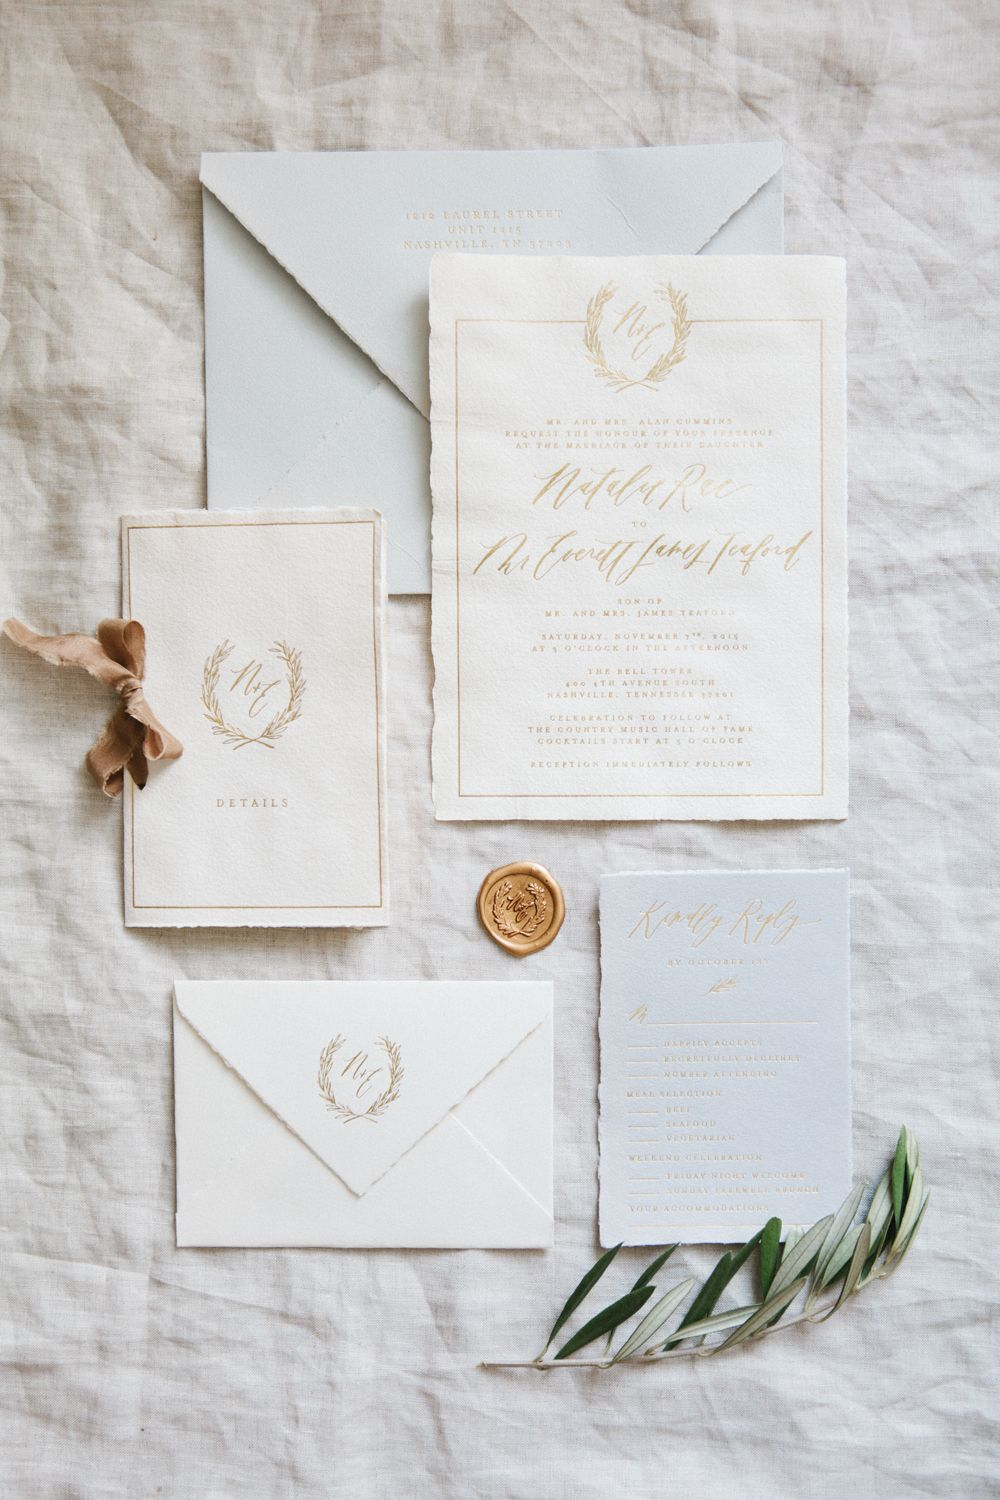 82552f1311084adc5cd3a81546f077bd handmade paper invitations calligraphy and design by written,Handmade Paper Wedding Invitations